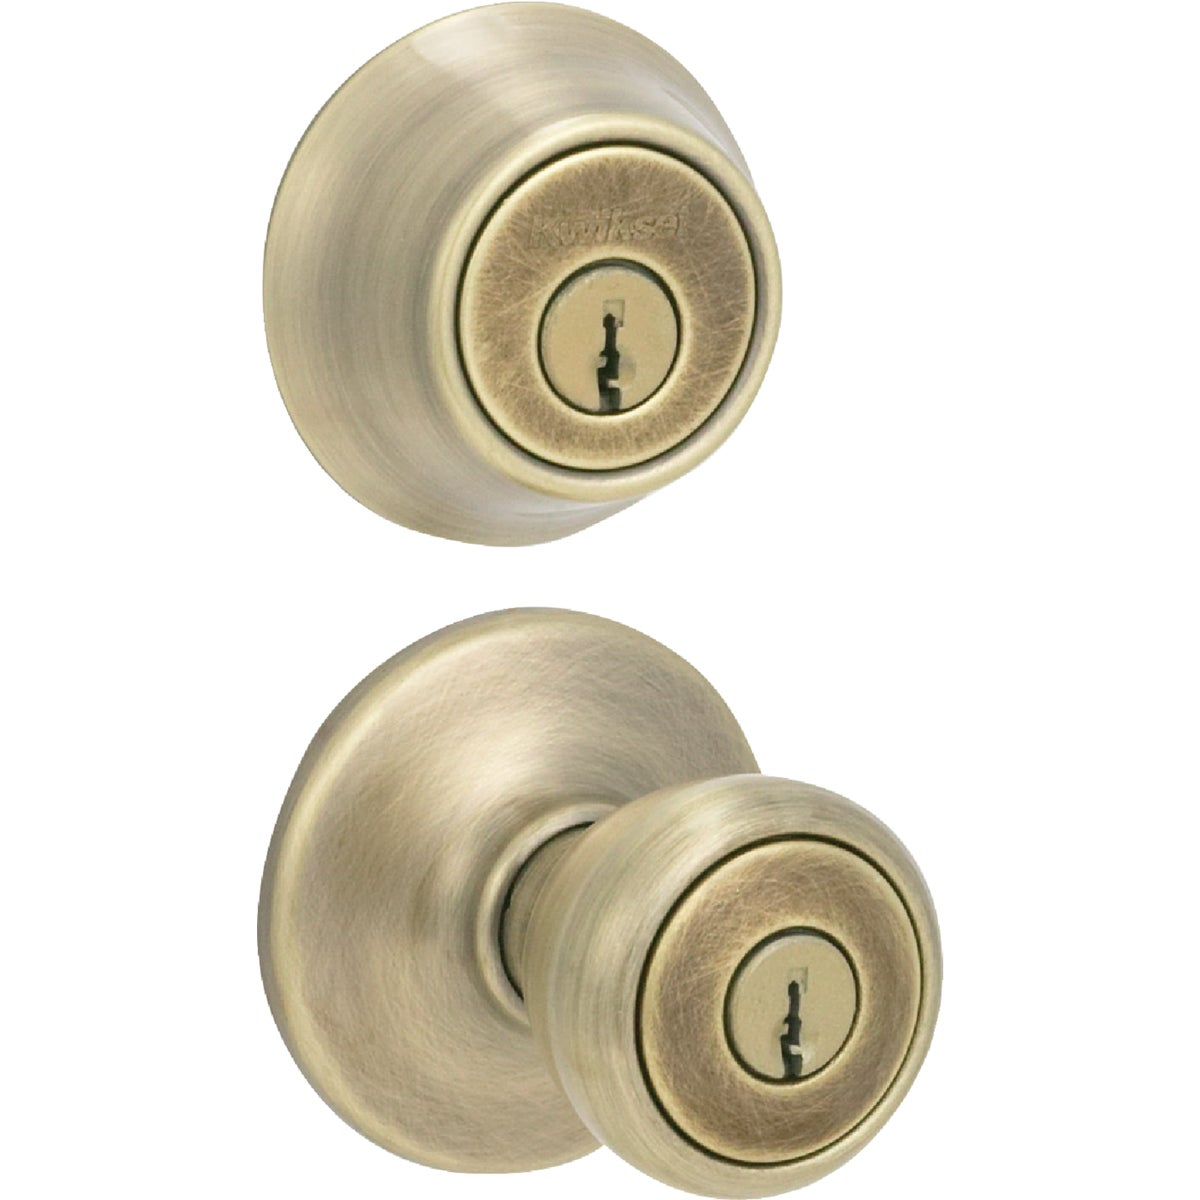 Kwikset AB TYLO 2CYL COMBO PACK 695T 5 CP CODE K6